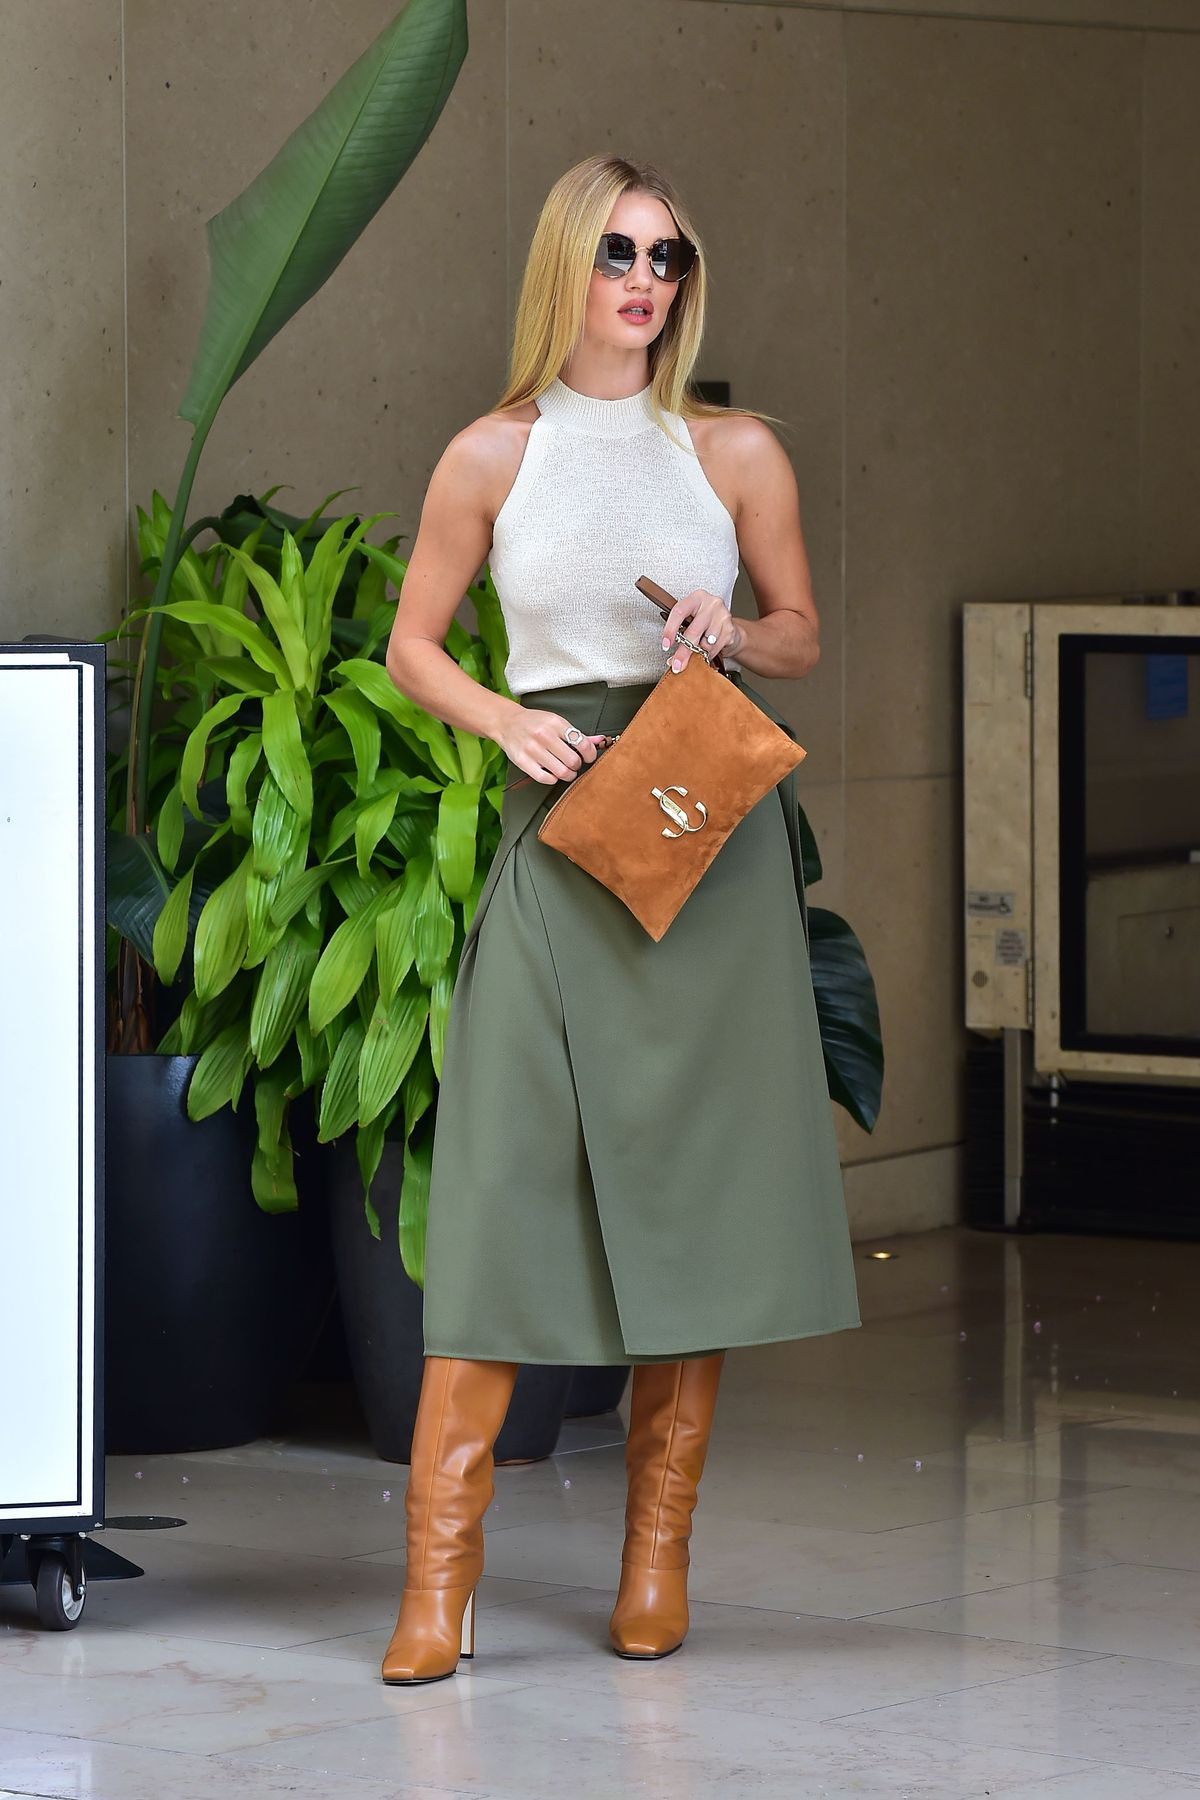 Rosie Huntington-Whiteley ist im eleganten Look unterwegs (ddp images)